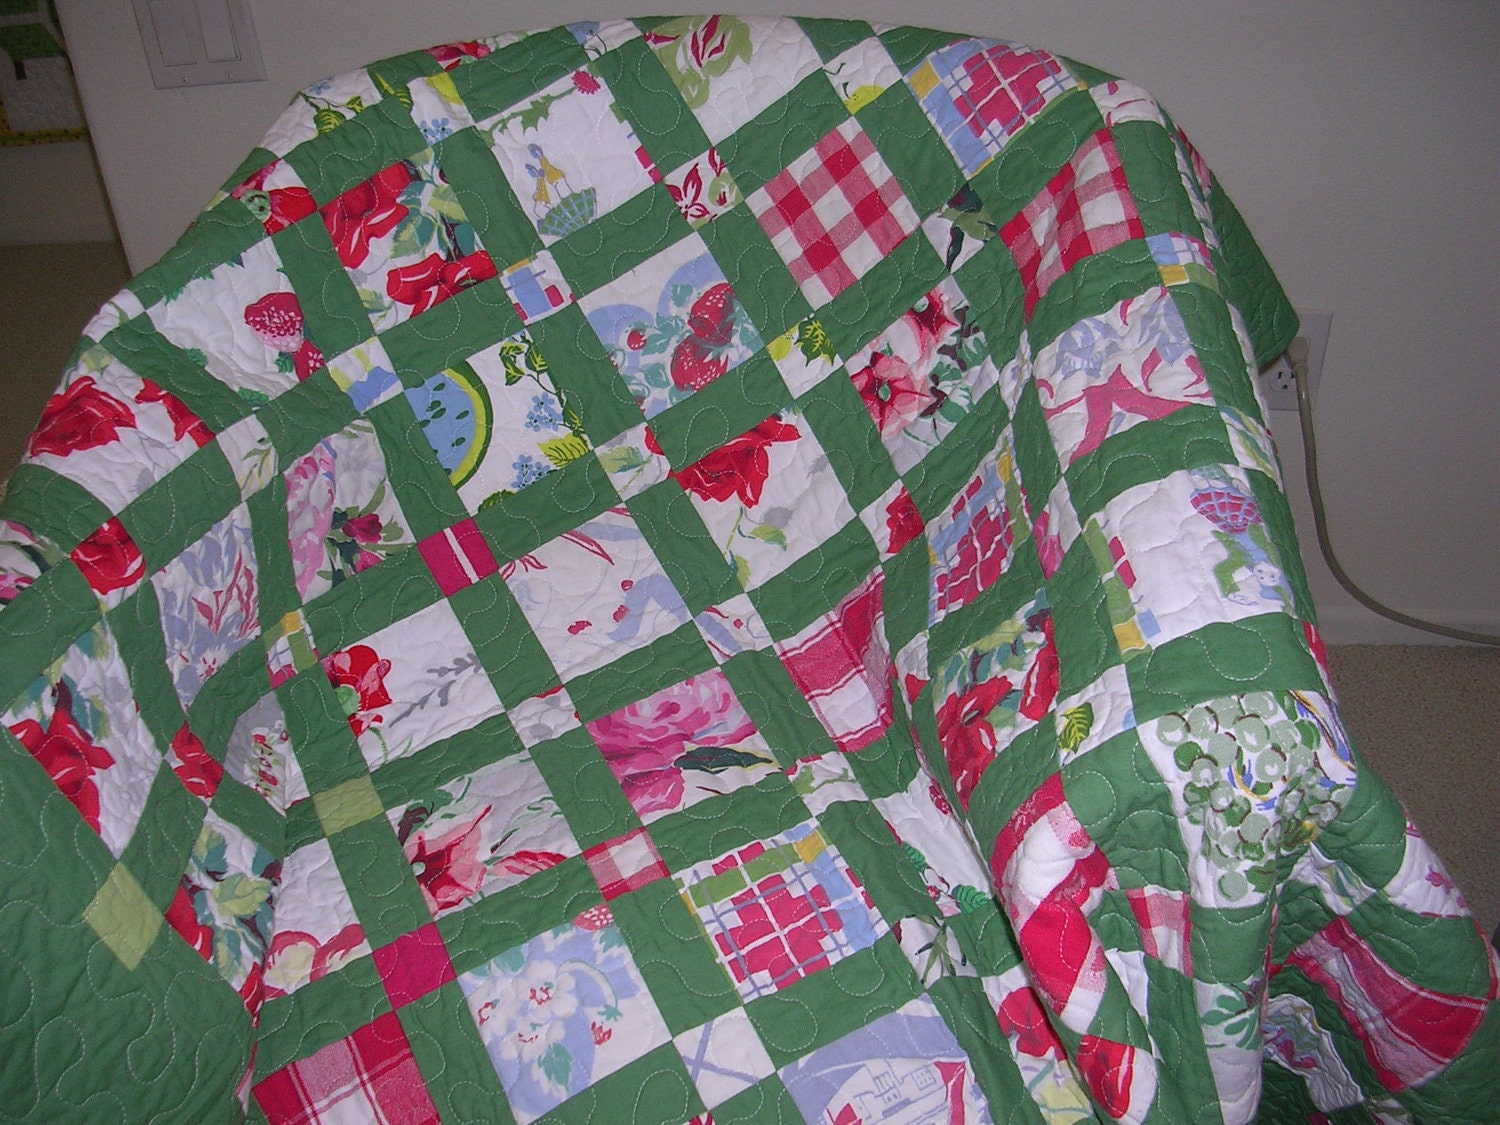 Vintage Tablecloth Lap QuiltSale Free Shipping